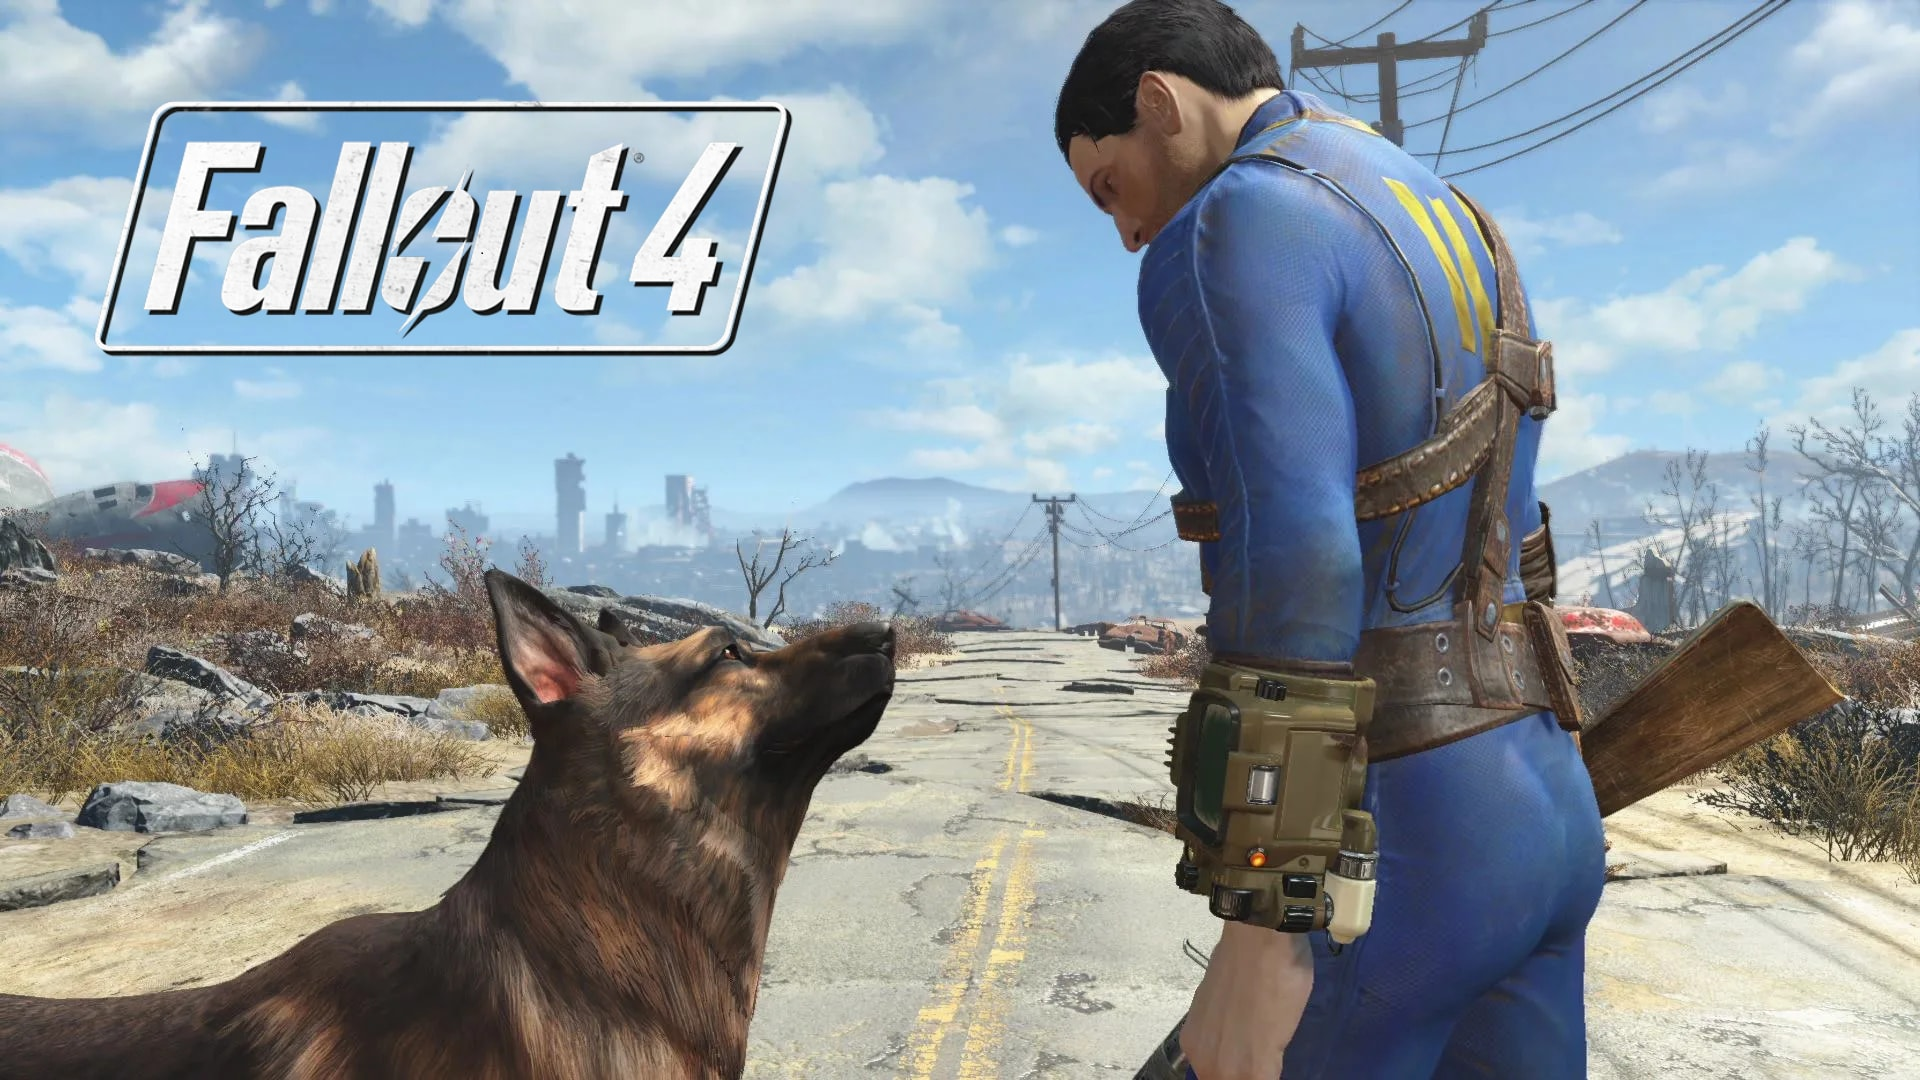 Fallout 4 - Single player games